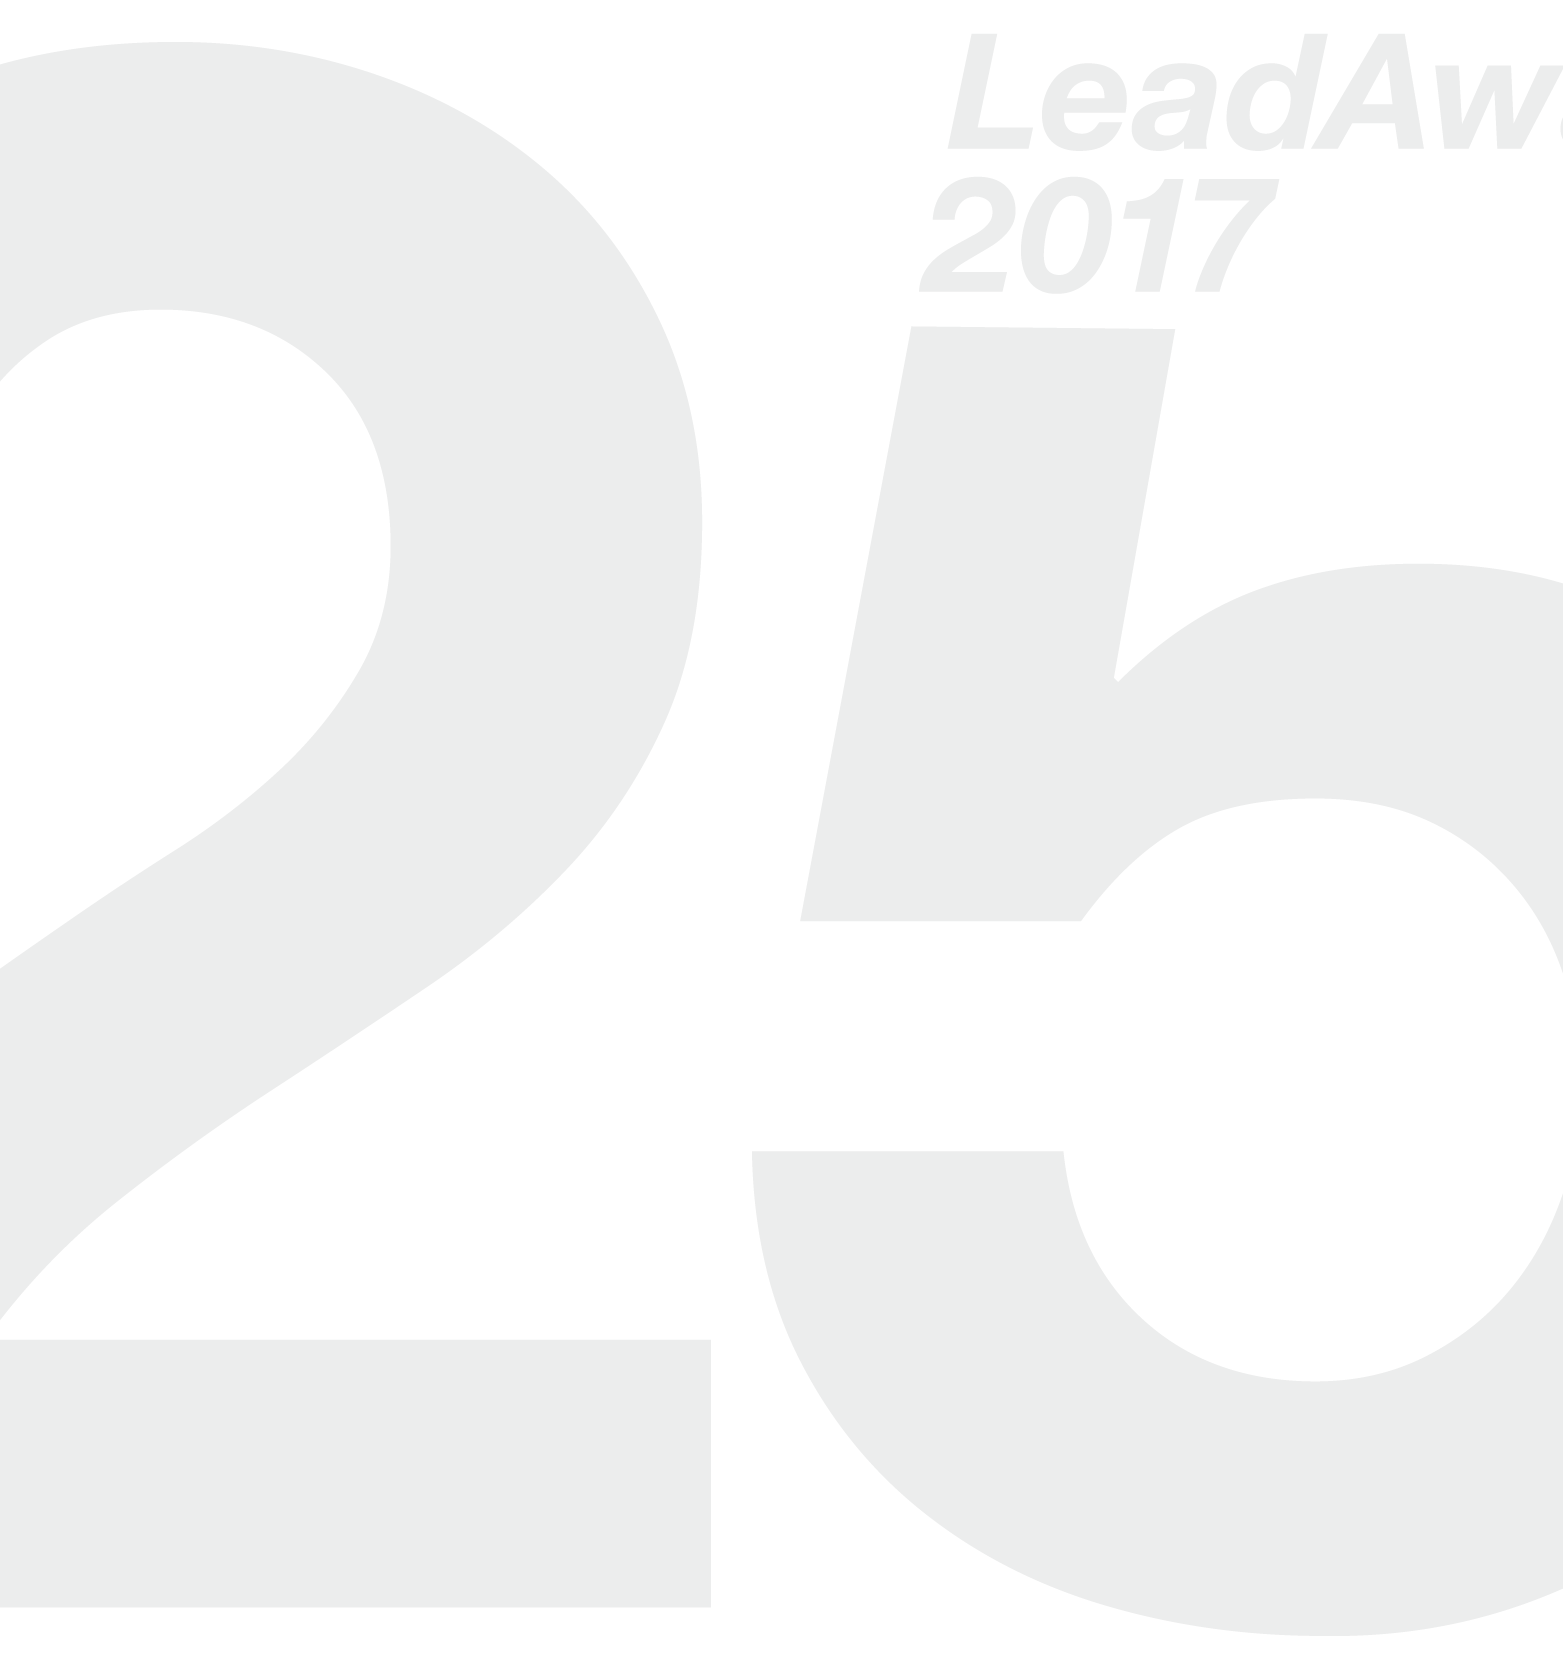 25 Jahre LeadAwards